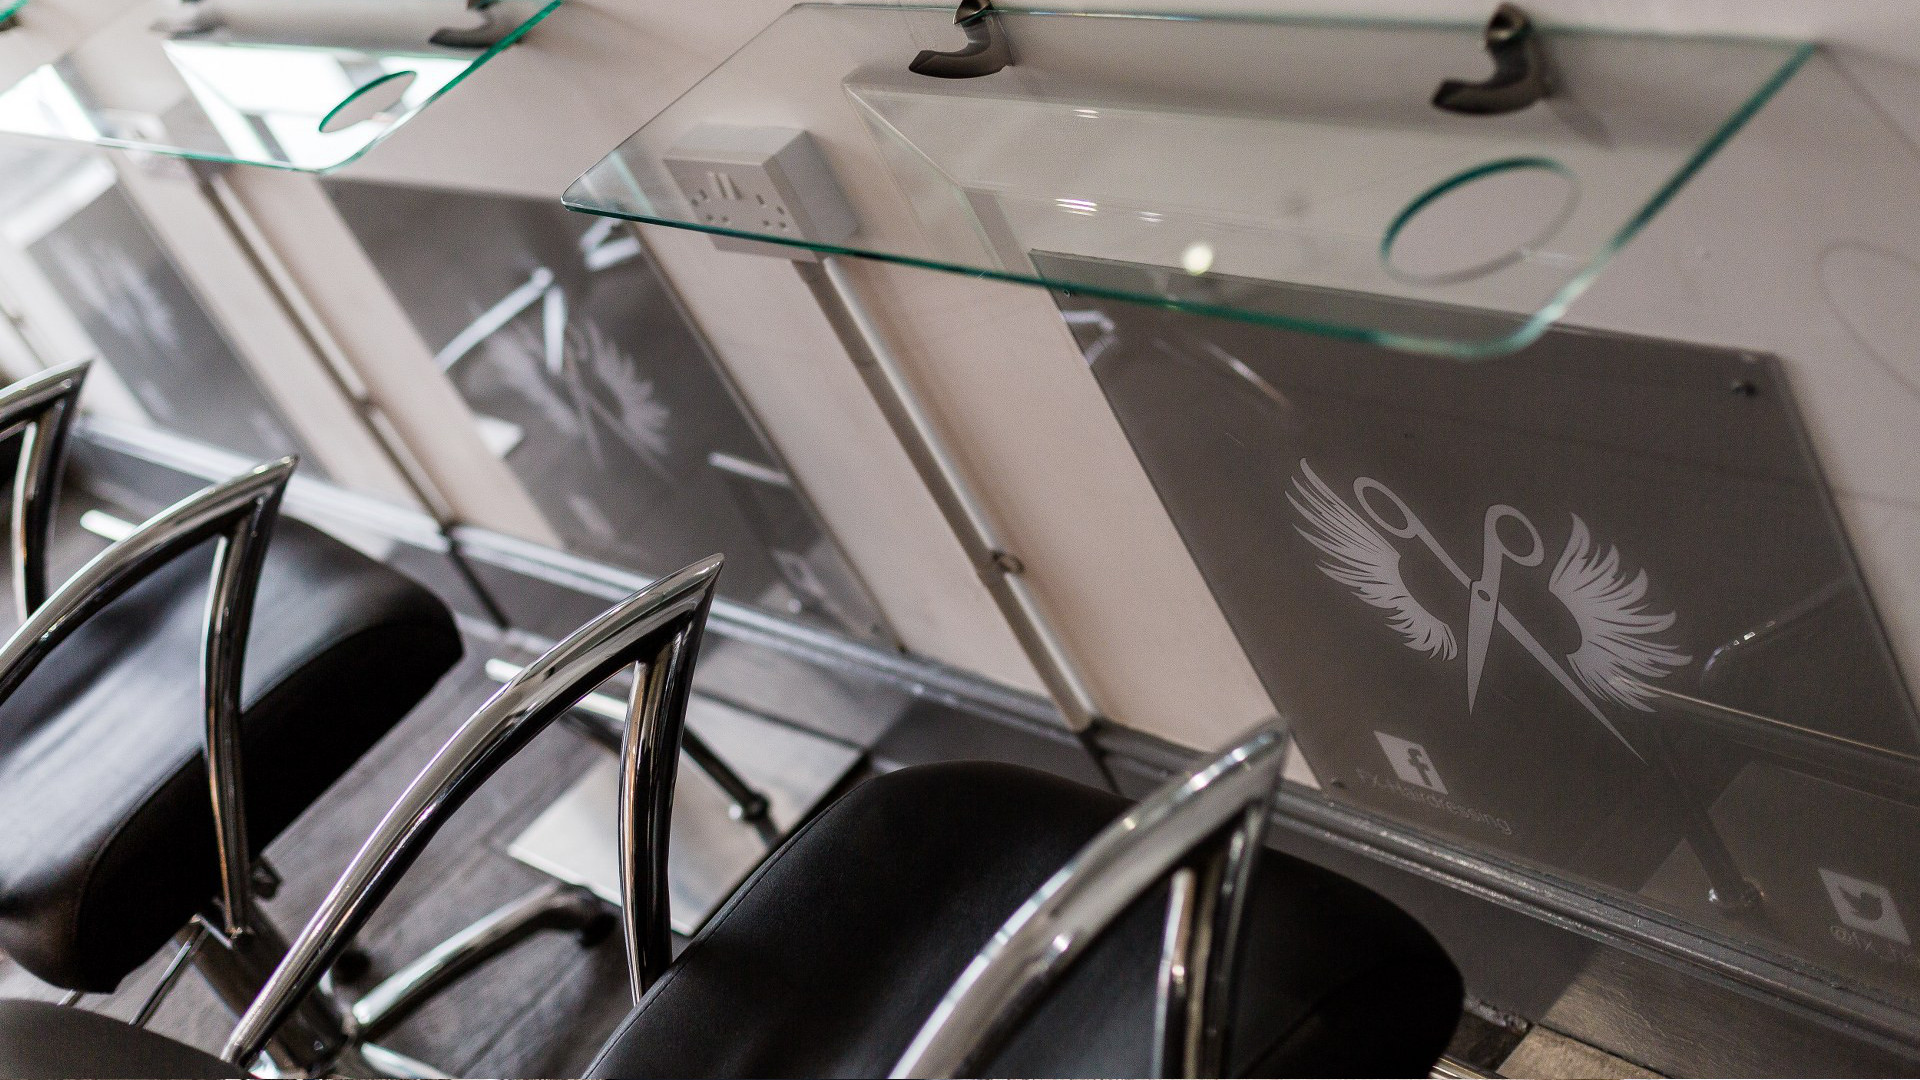 Fox Hairdressing - Cutting Chairs